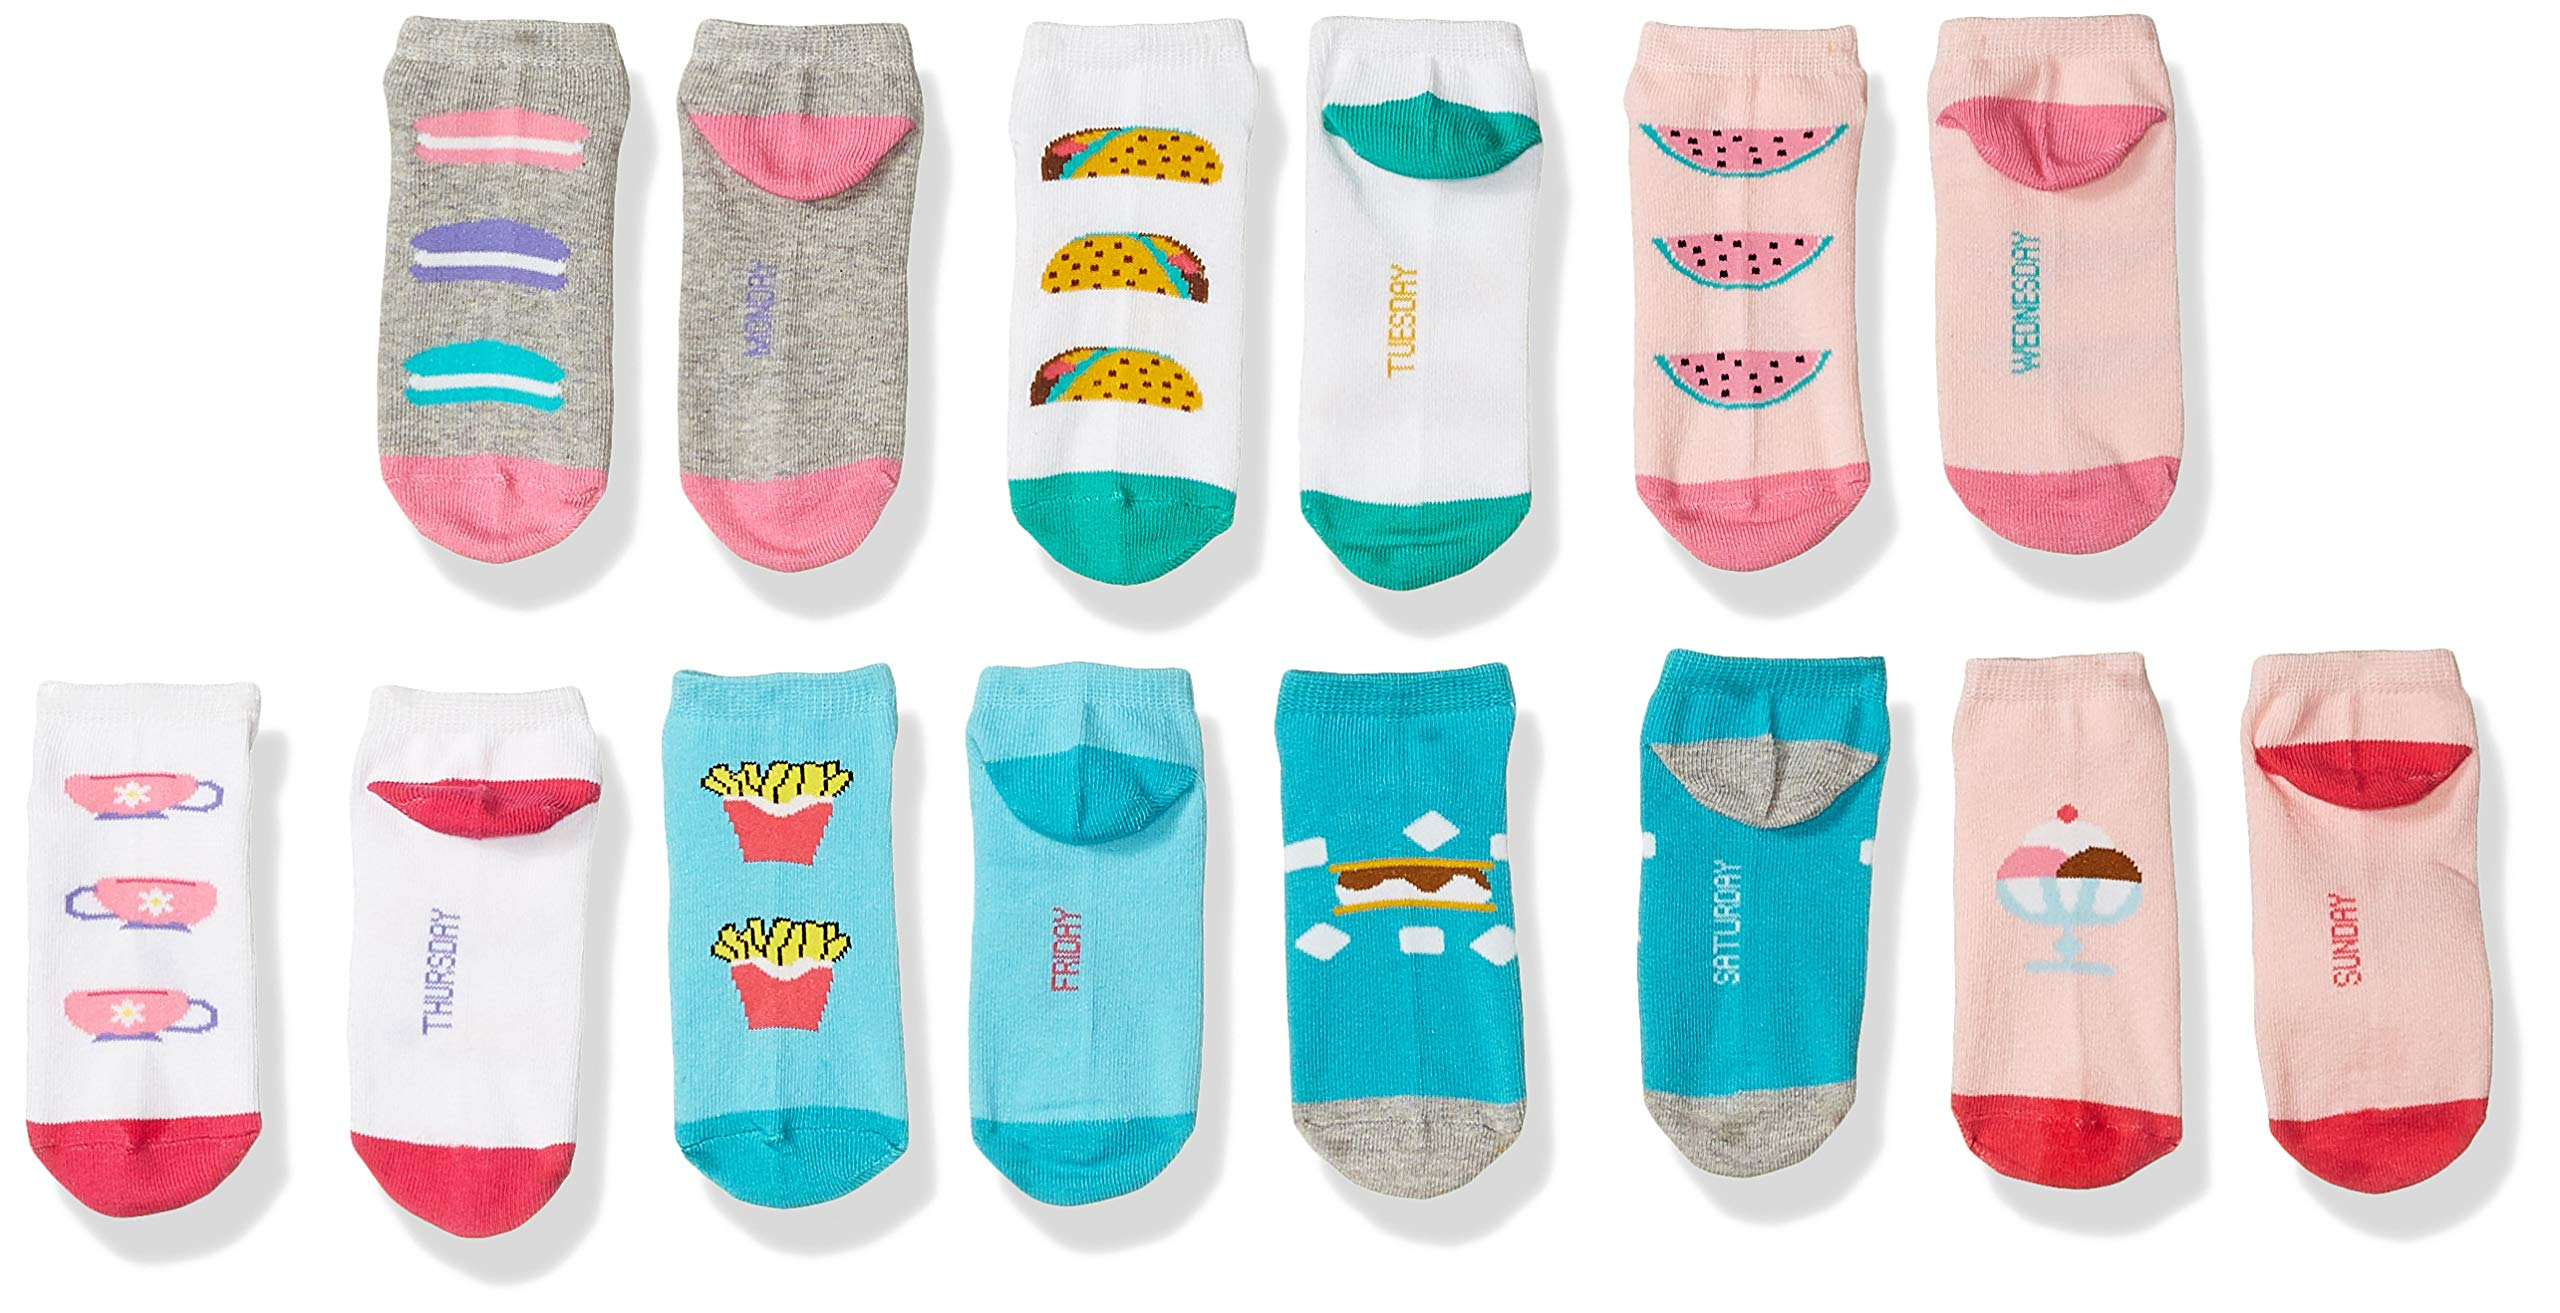 Spotted Zebra Kids' 12-Pack Low Cut Socks, Food Days of the Week , Large (3-6) by Spotted Zebra (Image #2)